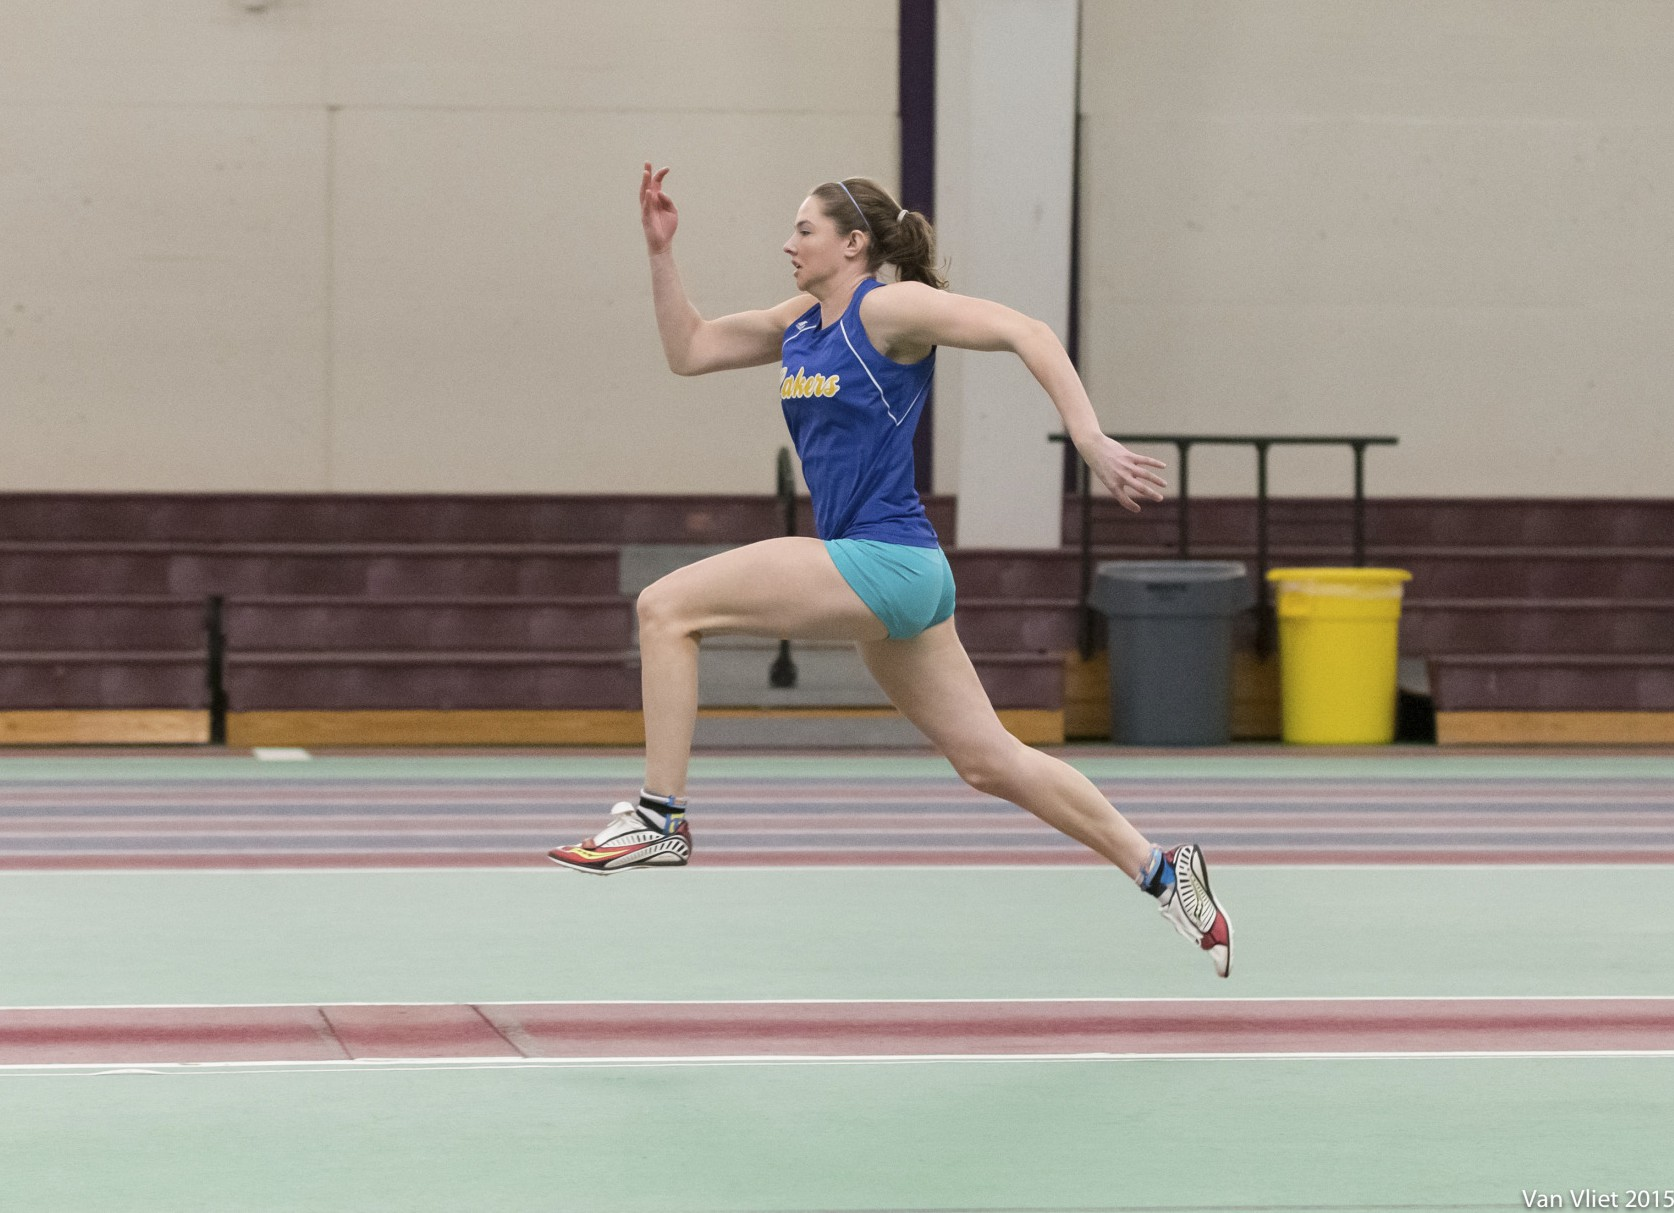 Kate Hall participates in the long jump at the New Balance Indoor Track Competition. Photo: Erich Sandoval